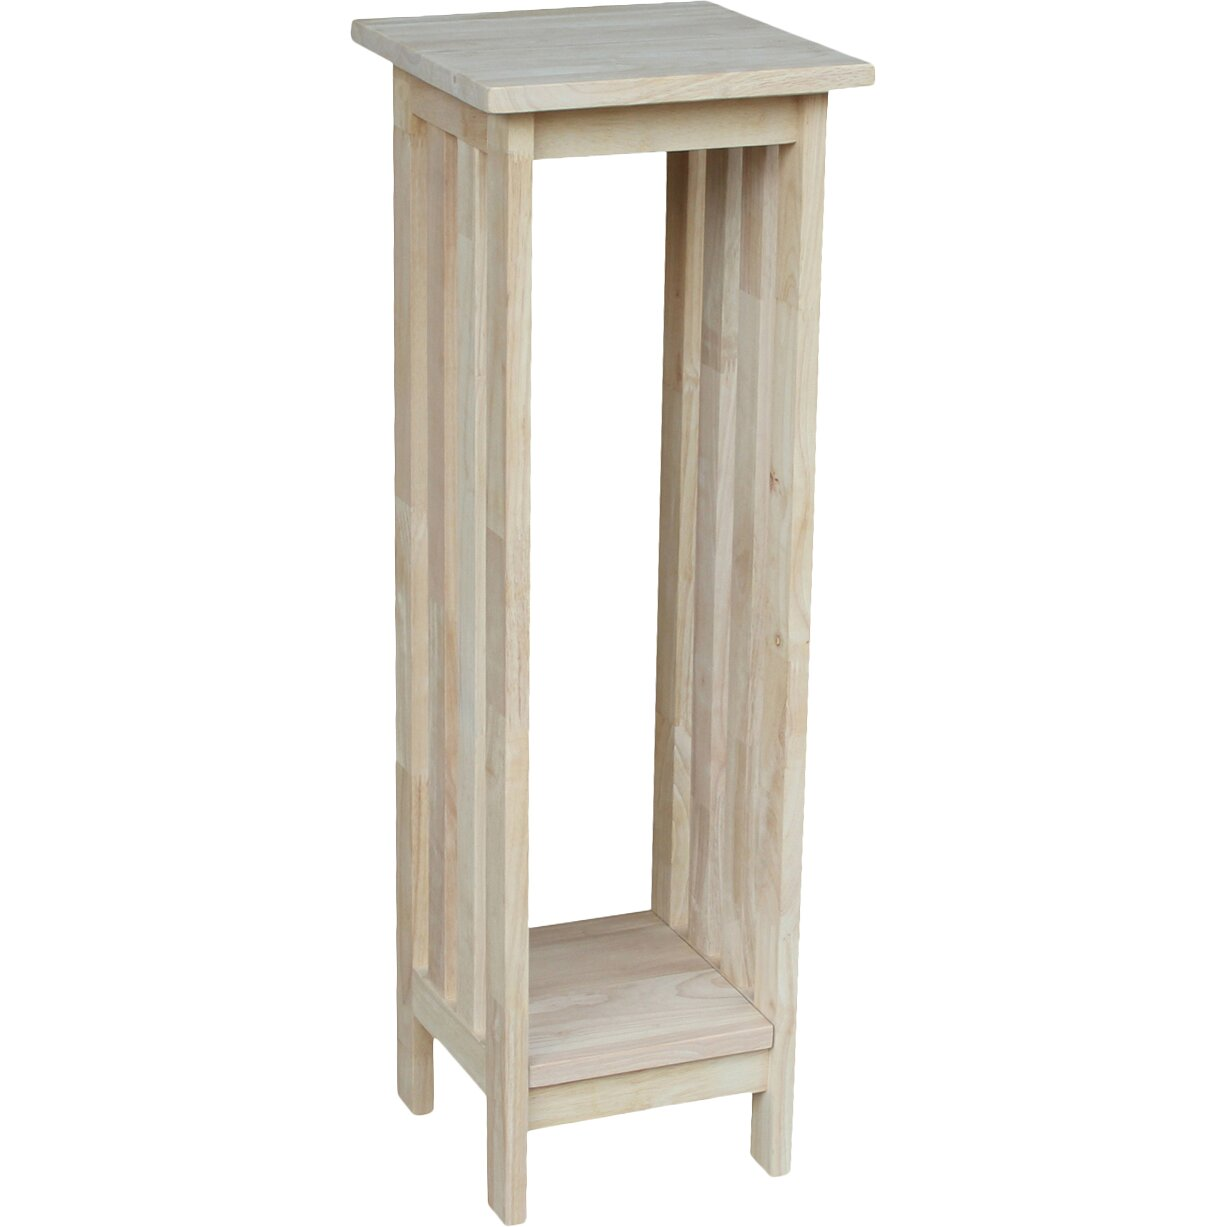 Unfinished wood plant stand wayfair